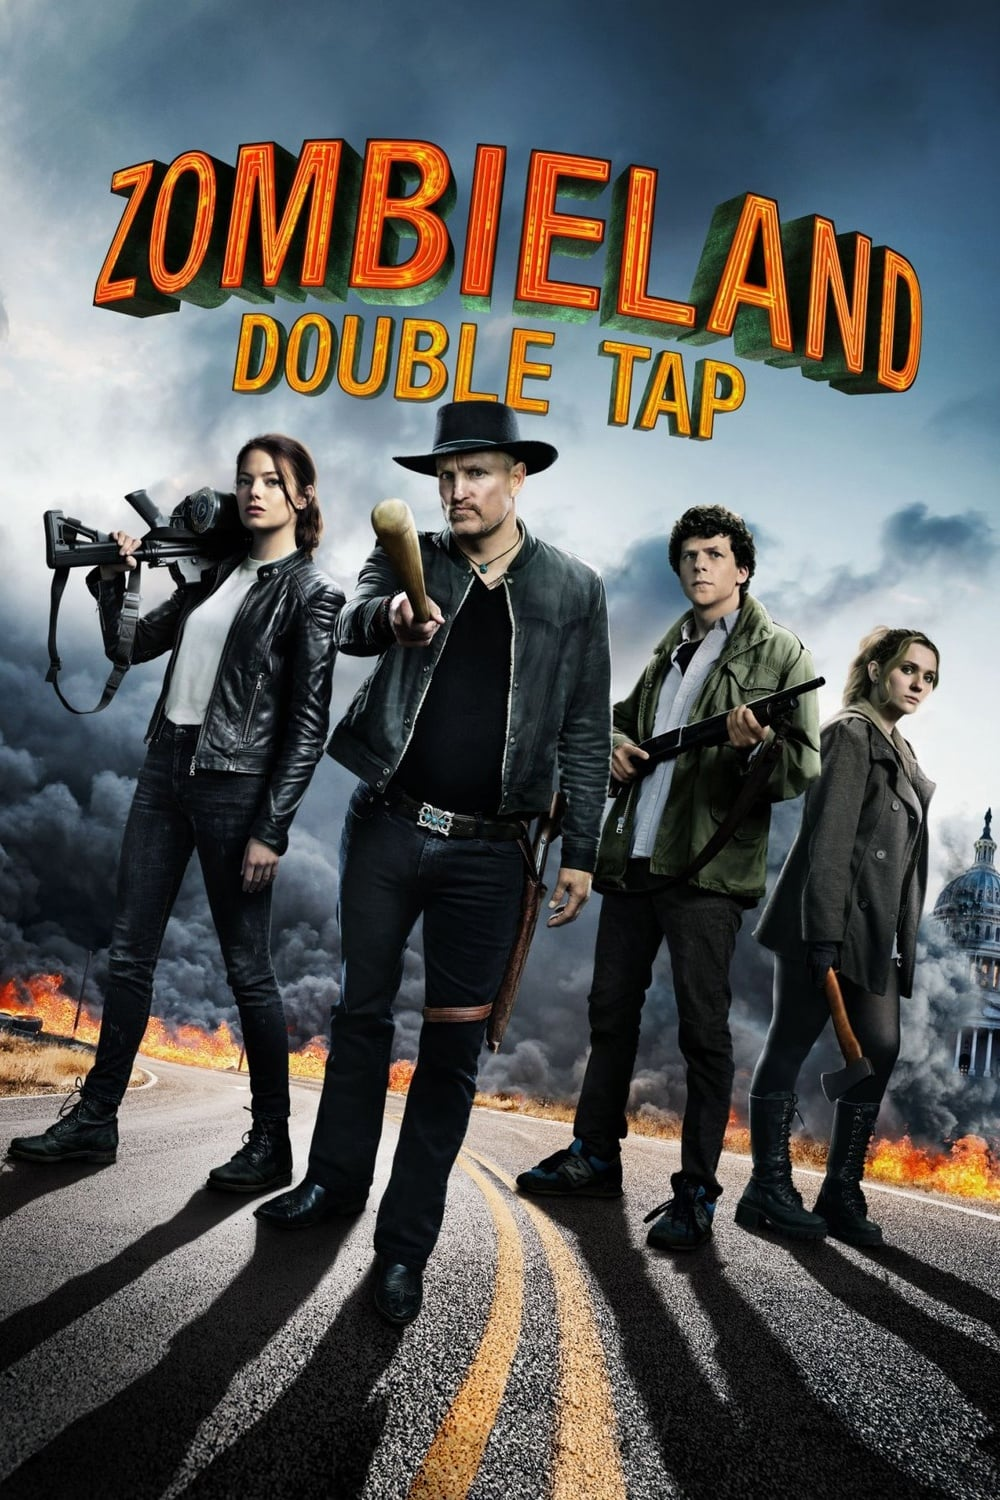 Zombieland: Double Tap (2019) Movie Reviews